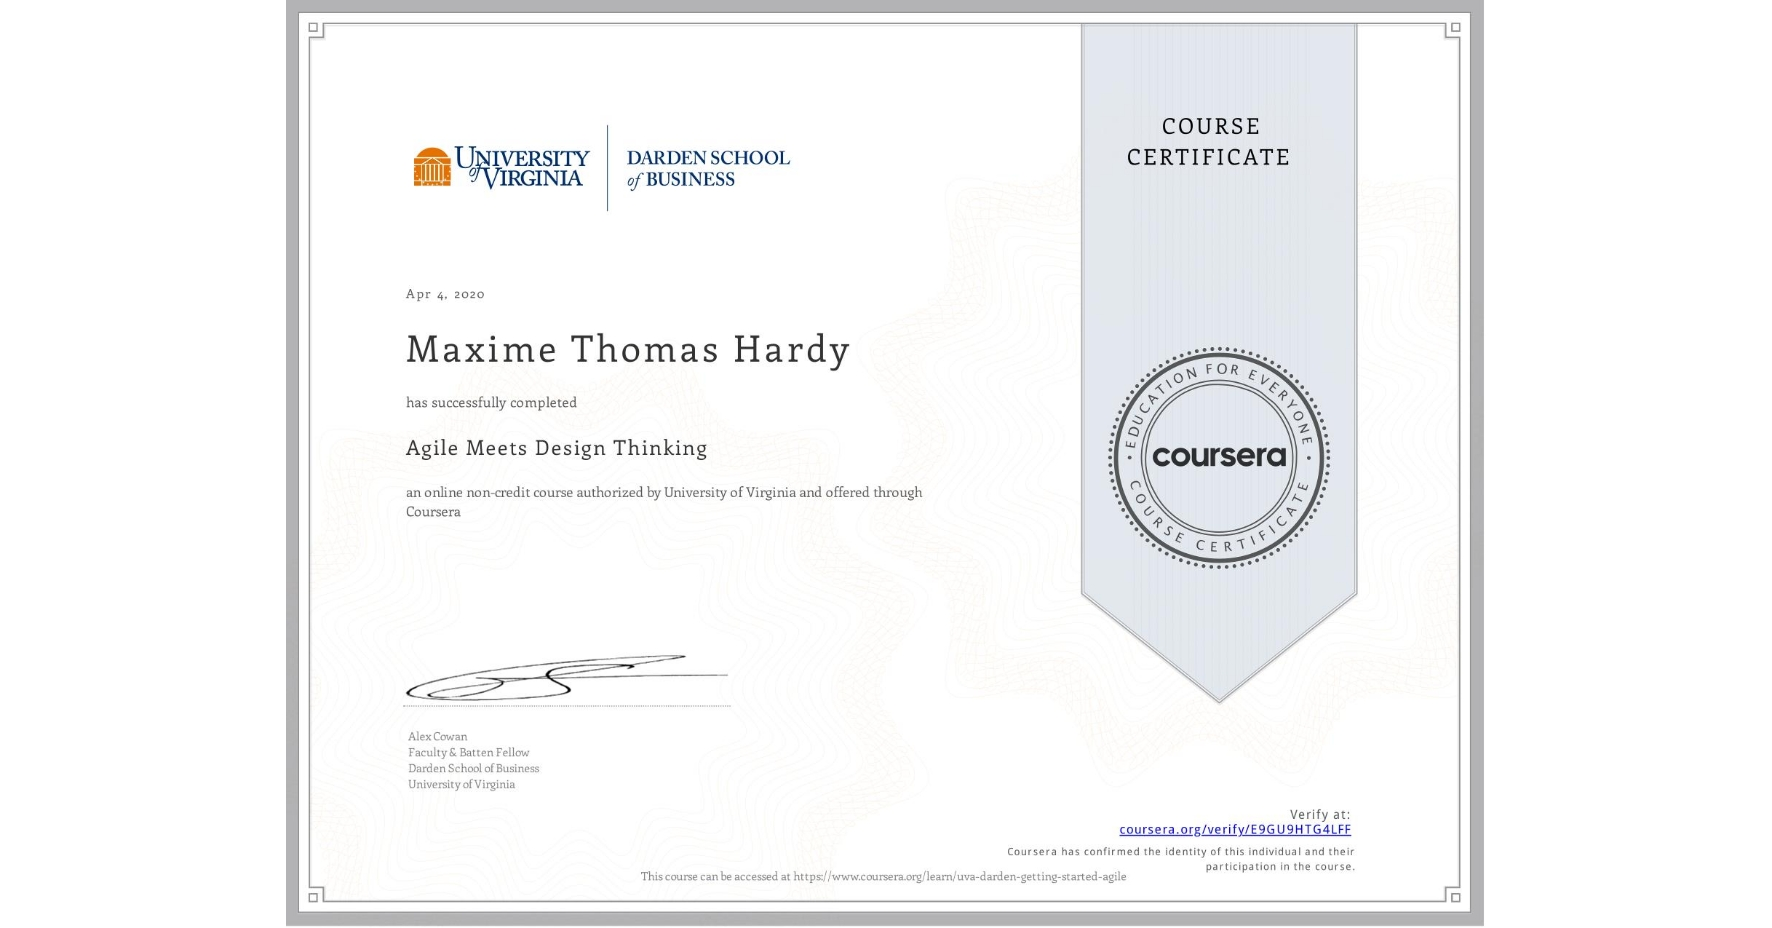 View certificate for Maxime Thomas Hardy, Agile Meets Design Thinking, an online non-credit course authorized by University of Virginia and offered through Coursera